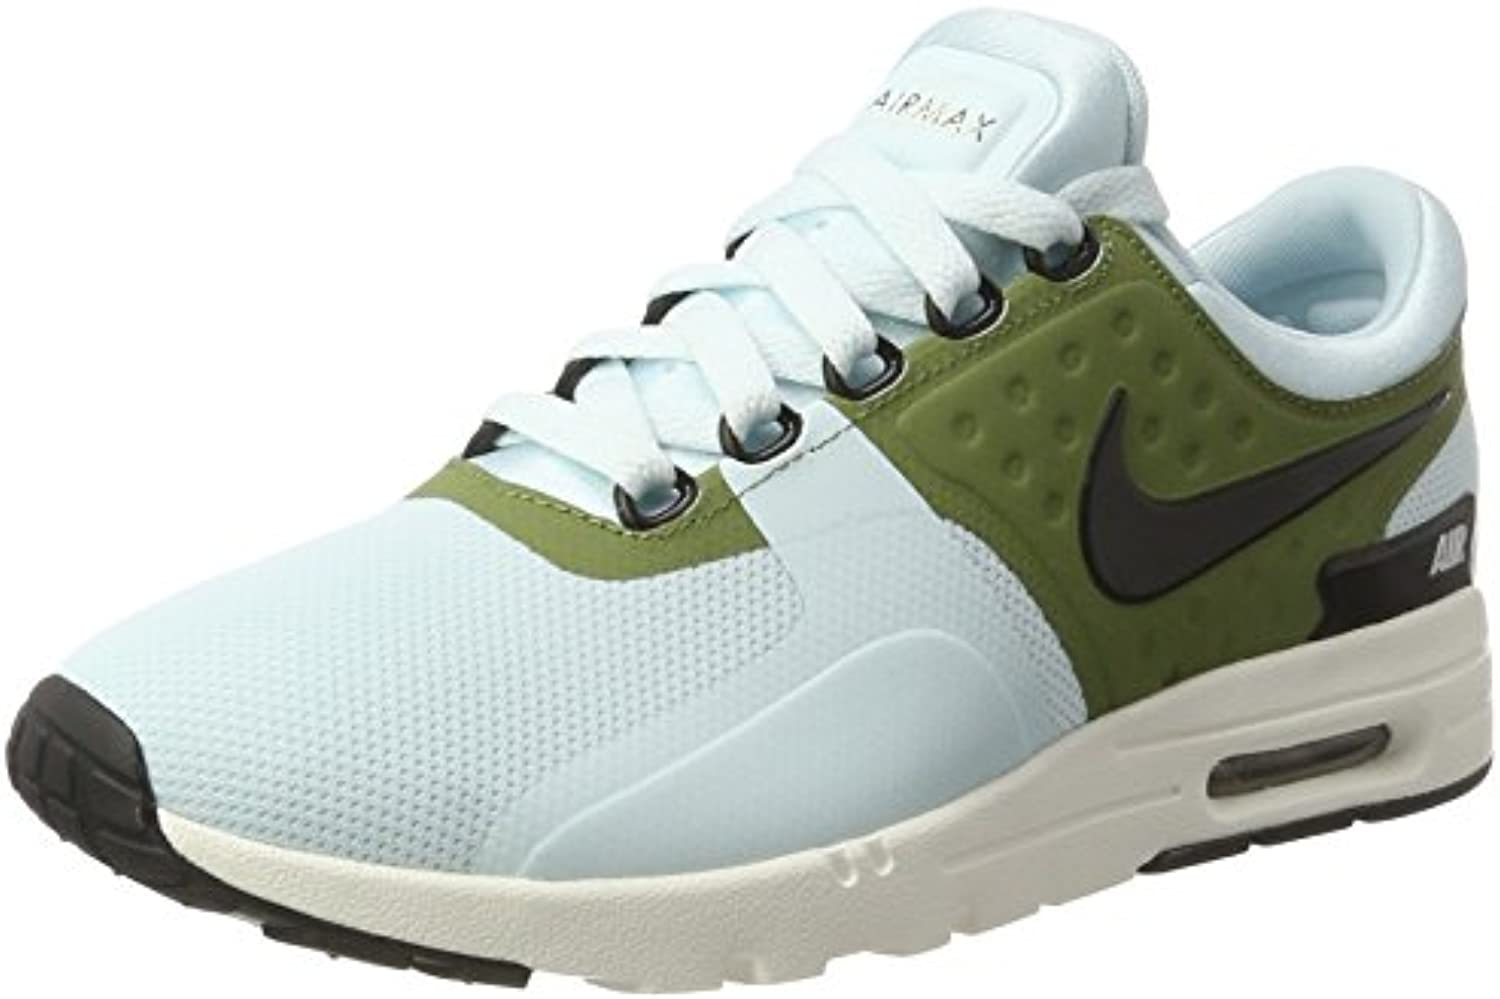 NIKE Basses WMNS Air Max Zero, Sneakers Basses NIKE Femme 618a9e